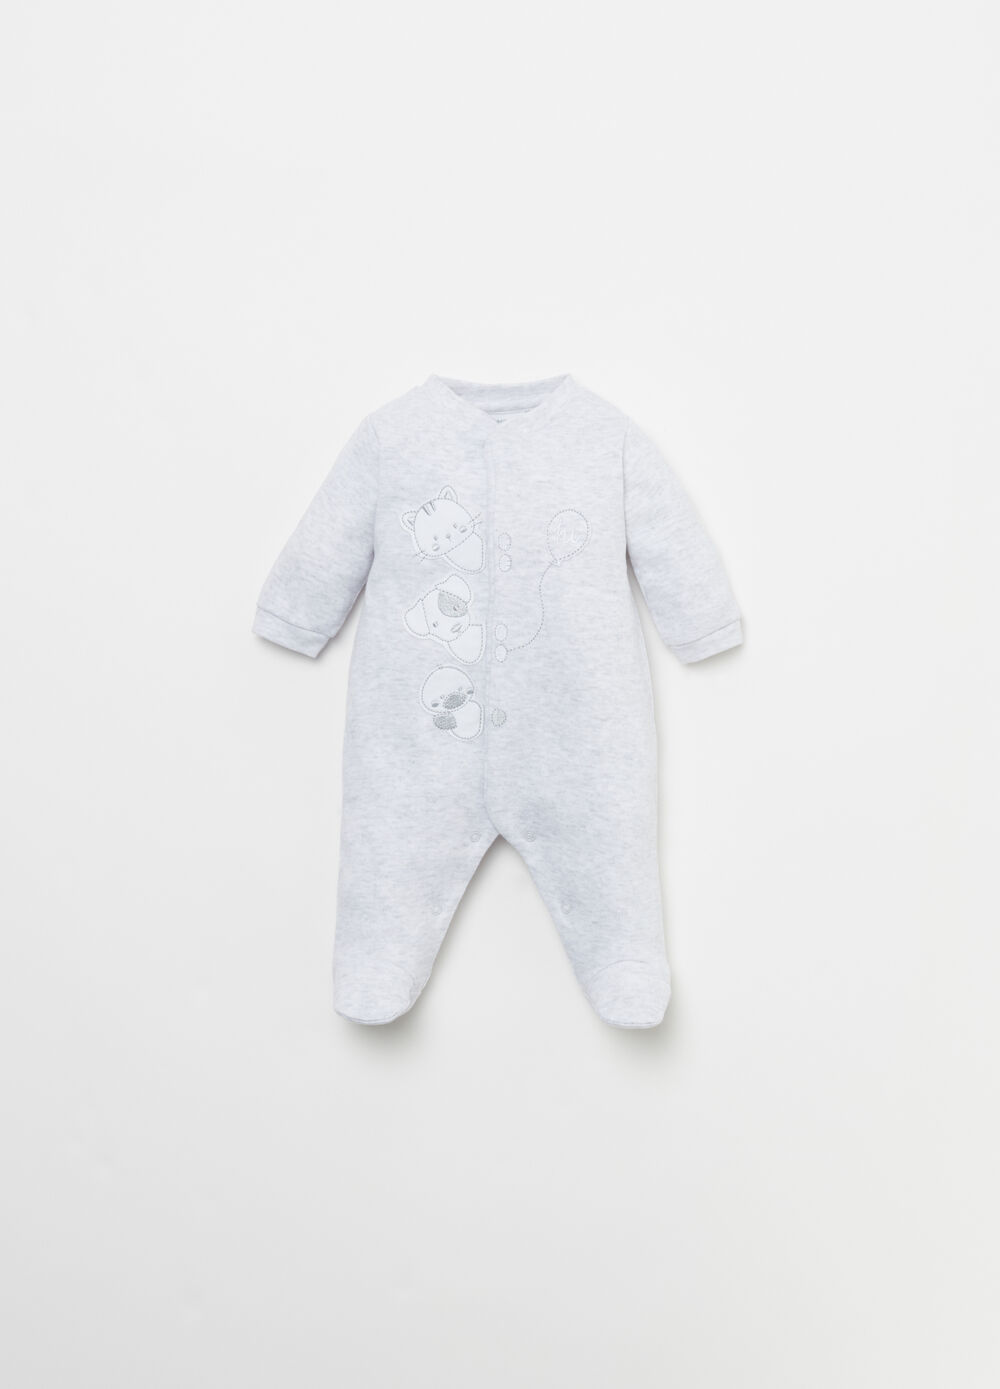 Cotton onesie with embroidery and applications